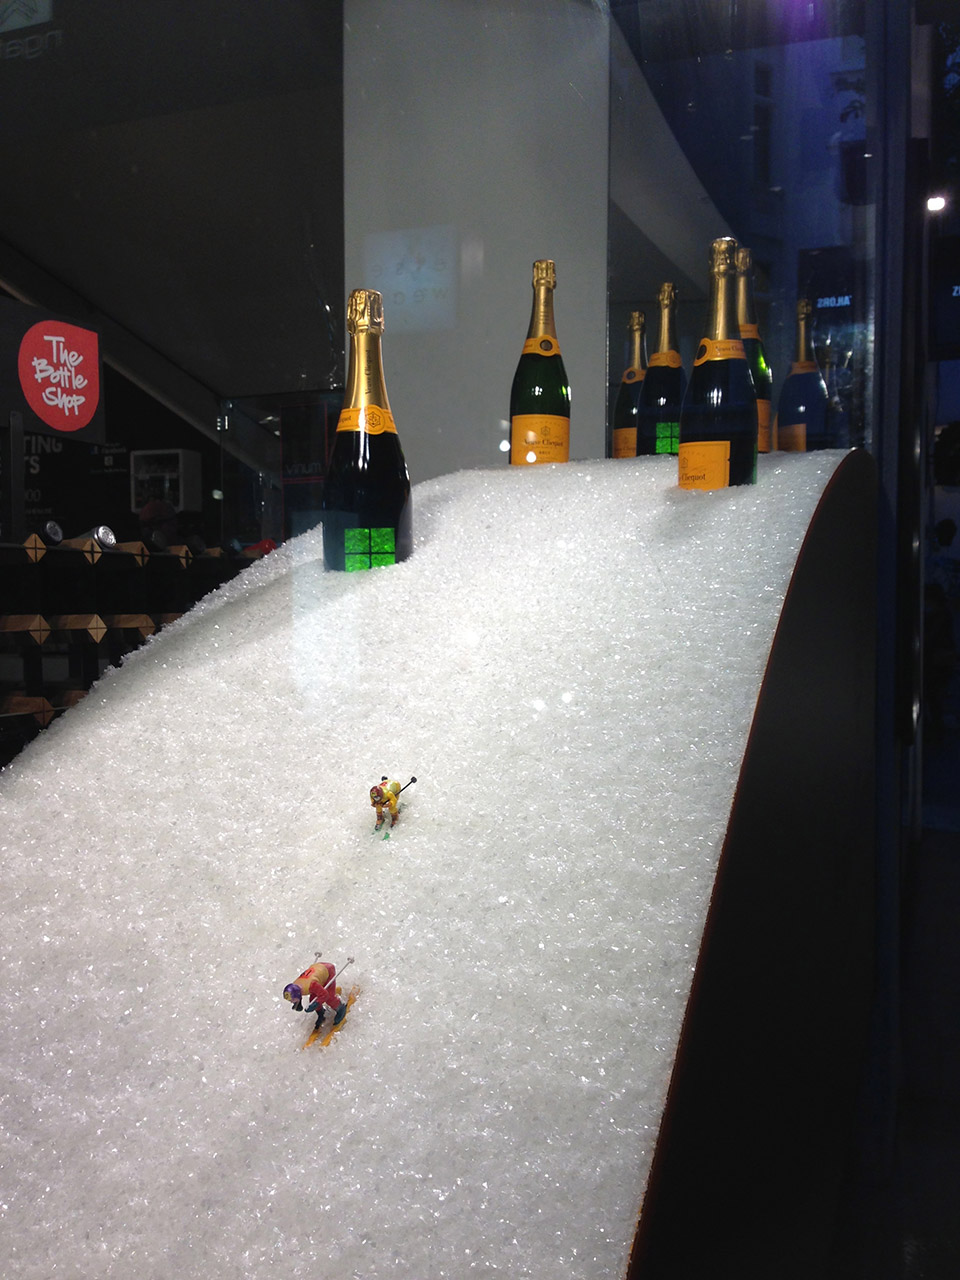 skiers on the slope - Veuve Clicquot - display design by Objet Bart